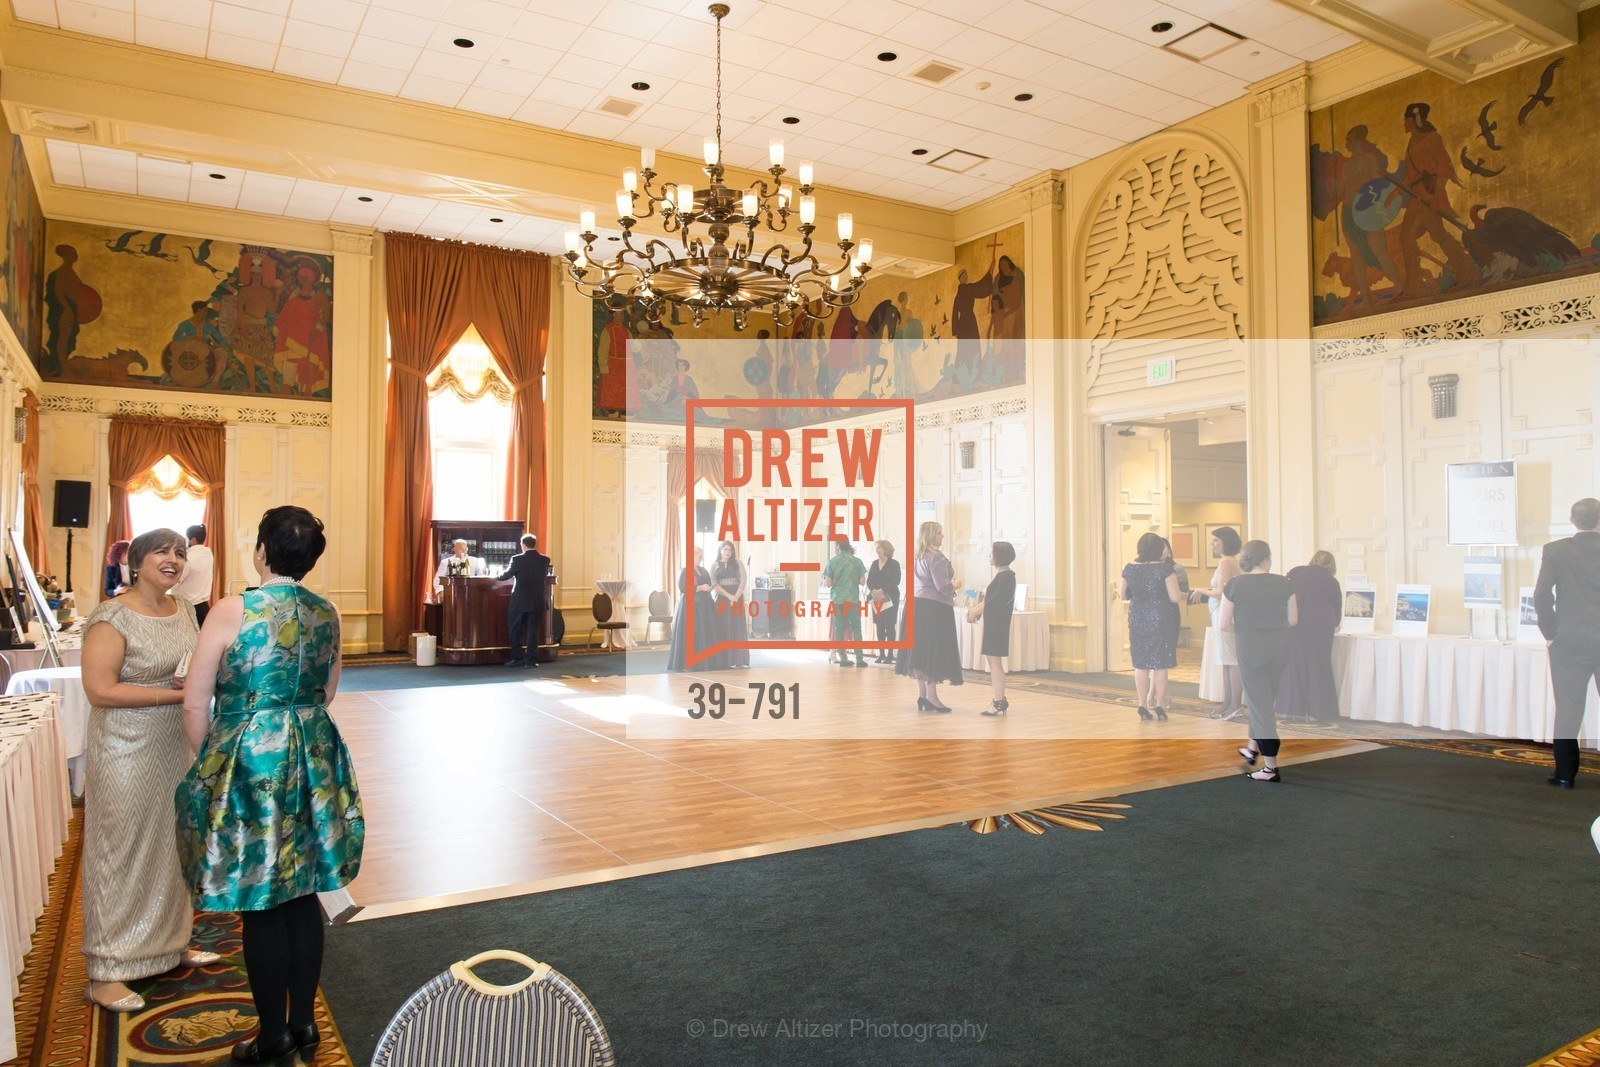 Atmosphere, SAN FRANCISCO HERITAGE Soiree 2015, US, April 19th, 2015,Drew Altizer, Drew Altizer Photography, full-service event agency, private events, San Francisco photographer, photographer California